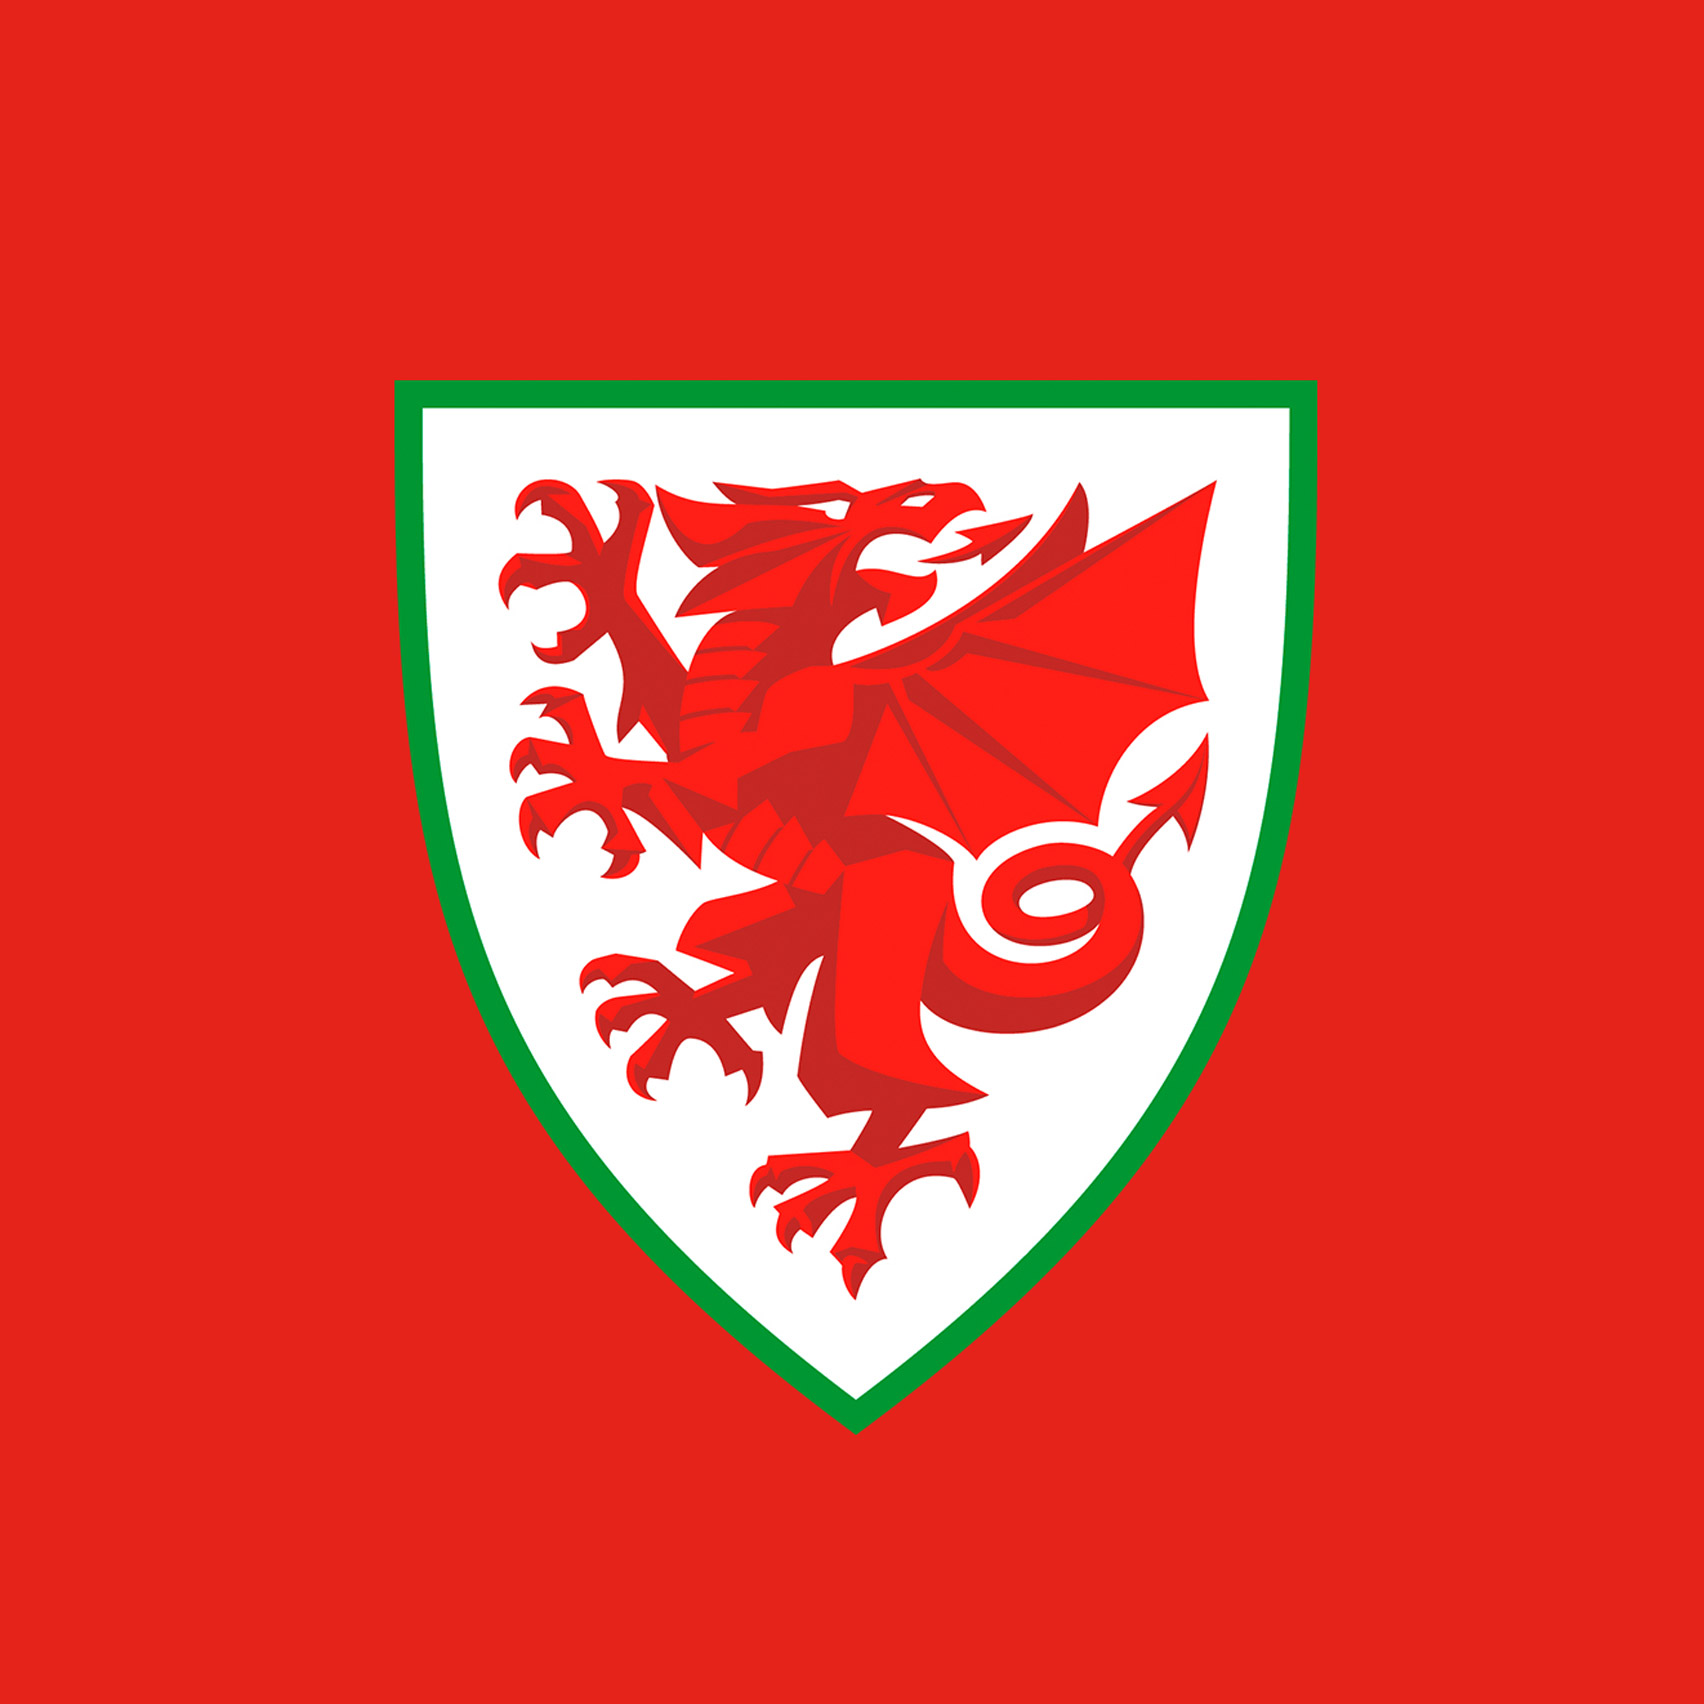 Football Association Of Wales Unveils Simplified Dragon As New Visual Identity